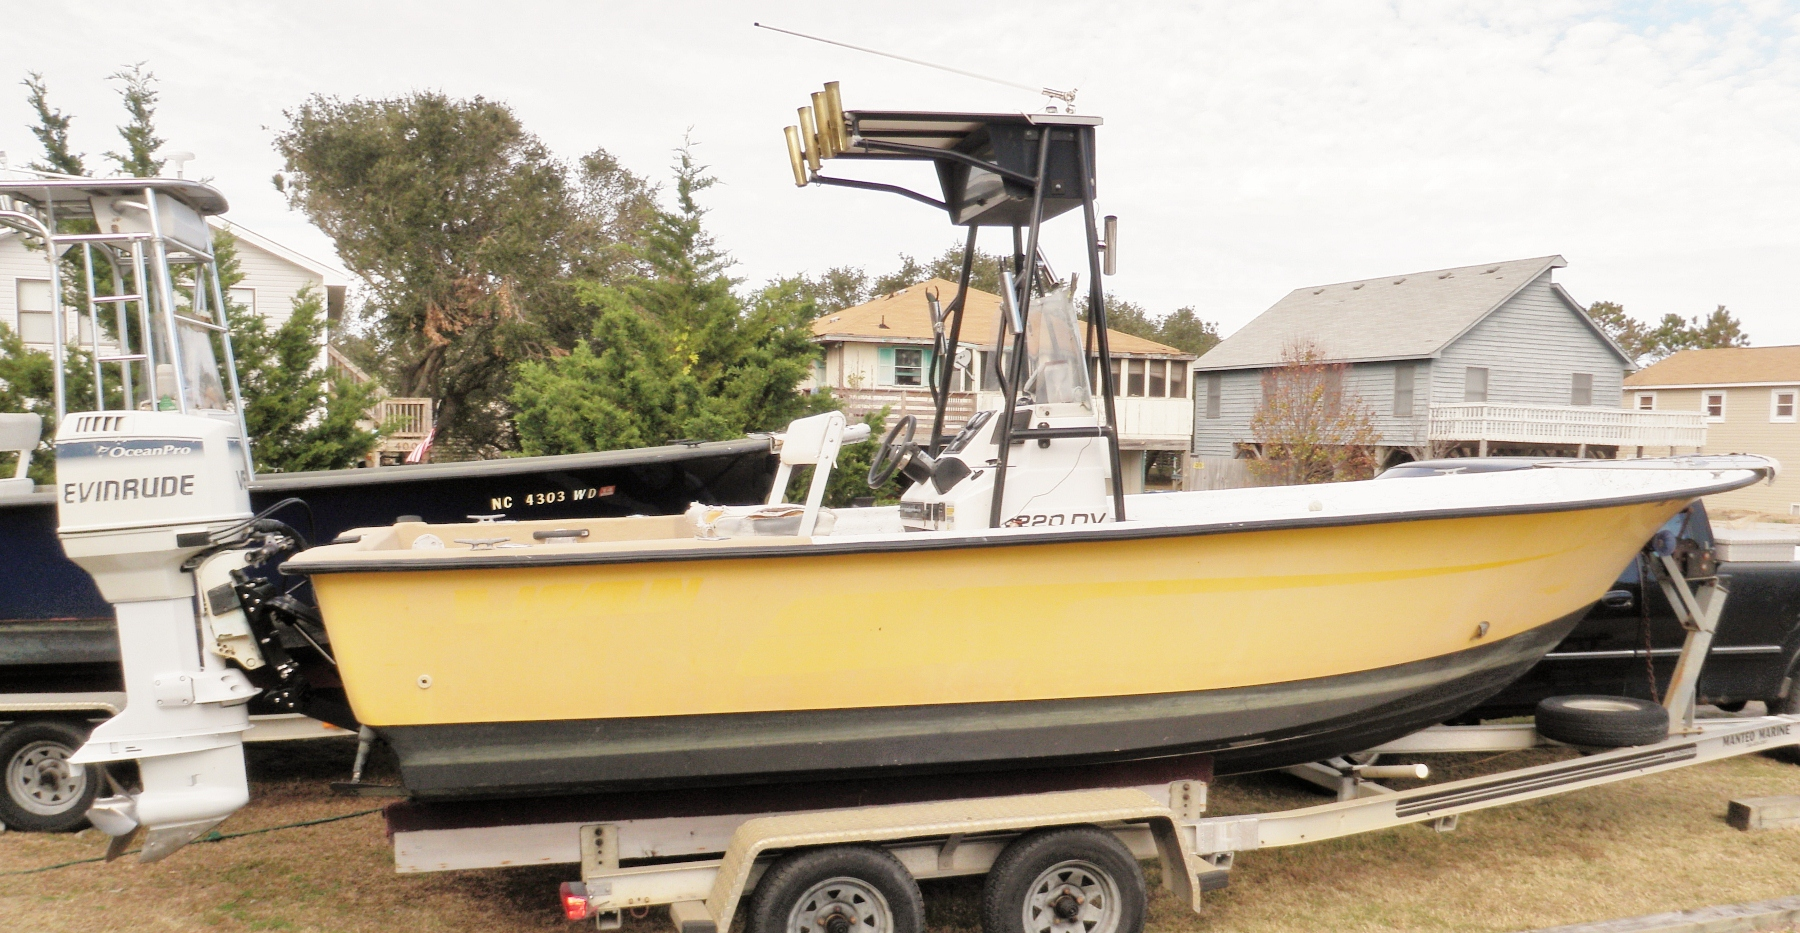 Freshwater fish nc - The Vessels Are Stripped Down Of All The Unnecessary Compartments That Take Away From Fishing Space The New And Improved Yeller Feller Boat Is Finished